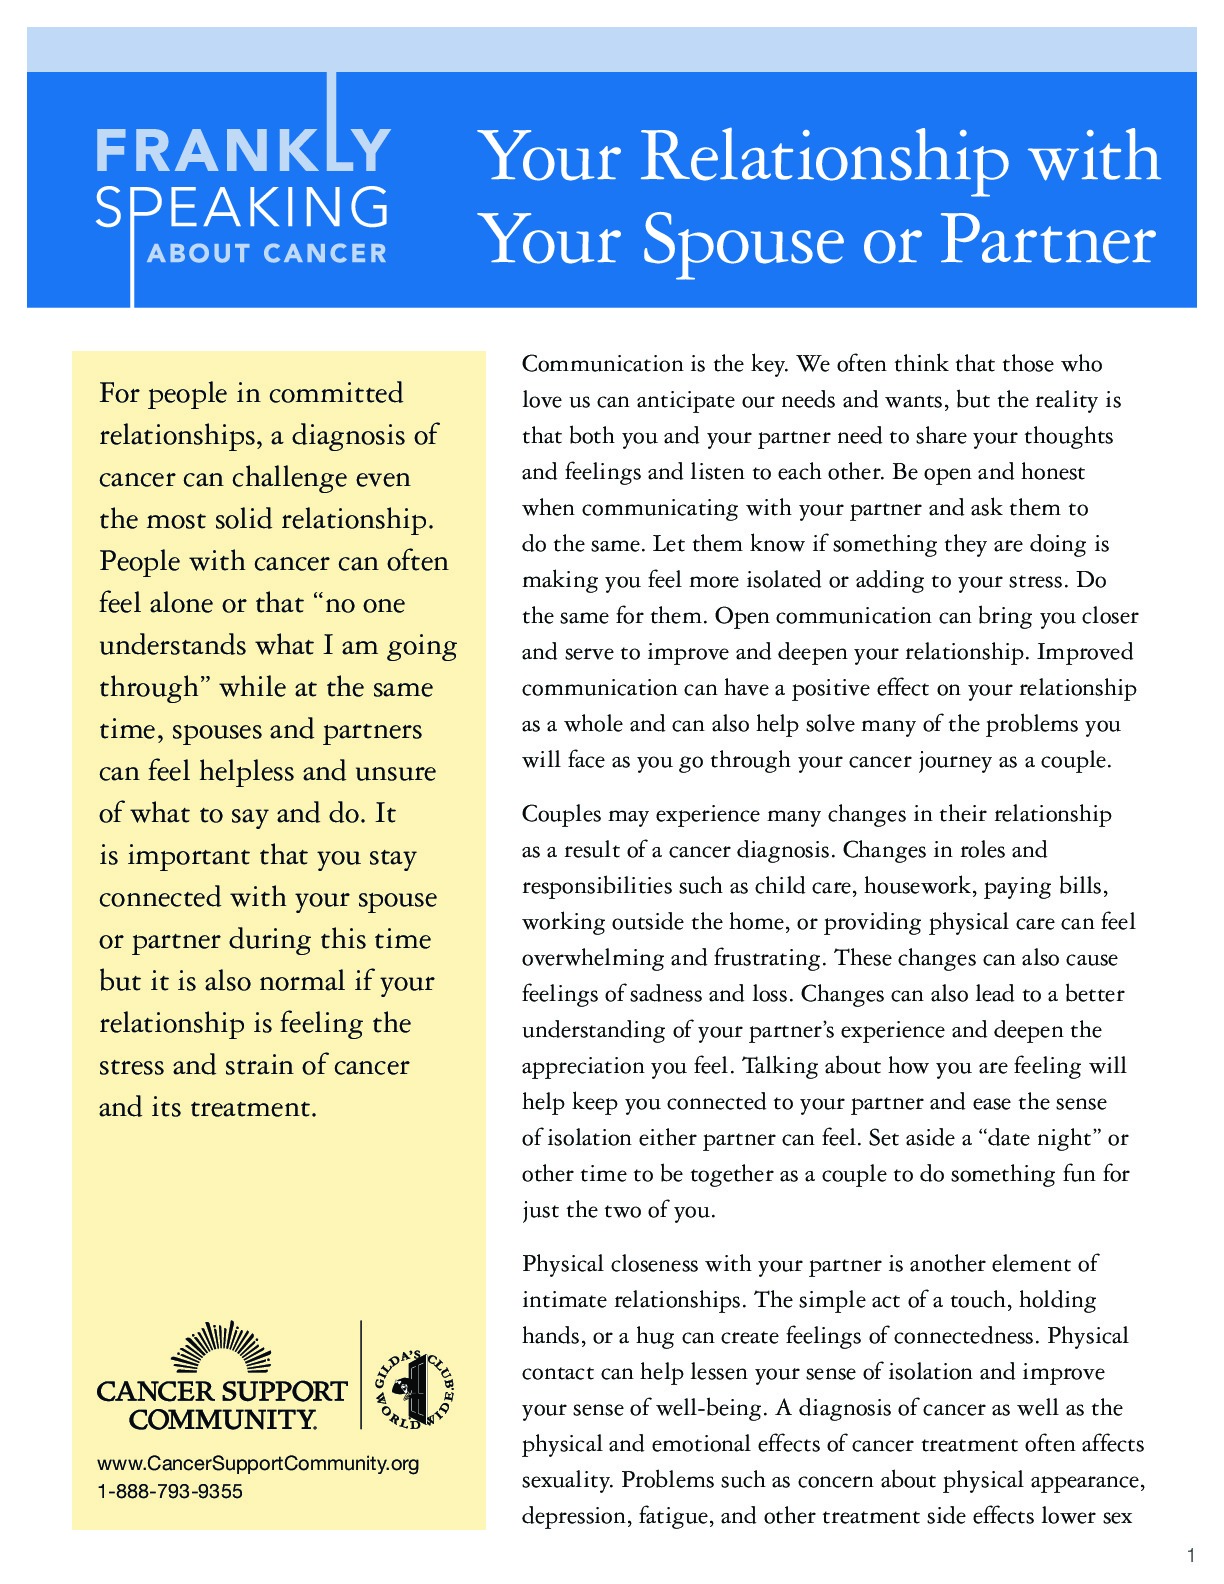 Your Relationship with Your Spouse or Partner